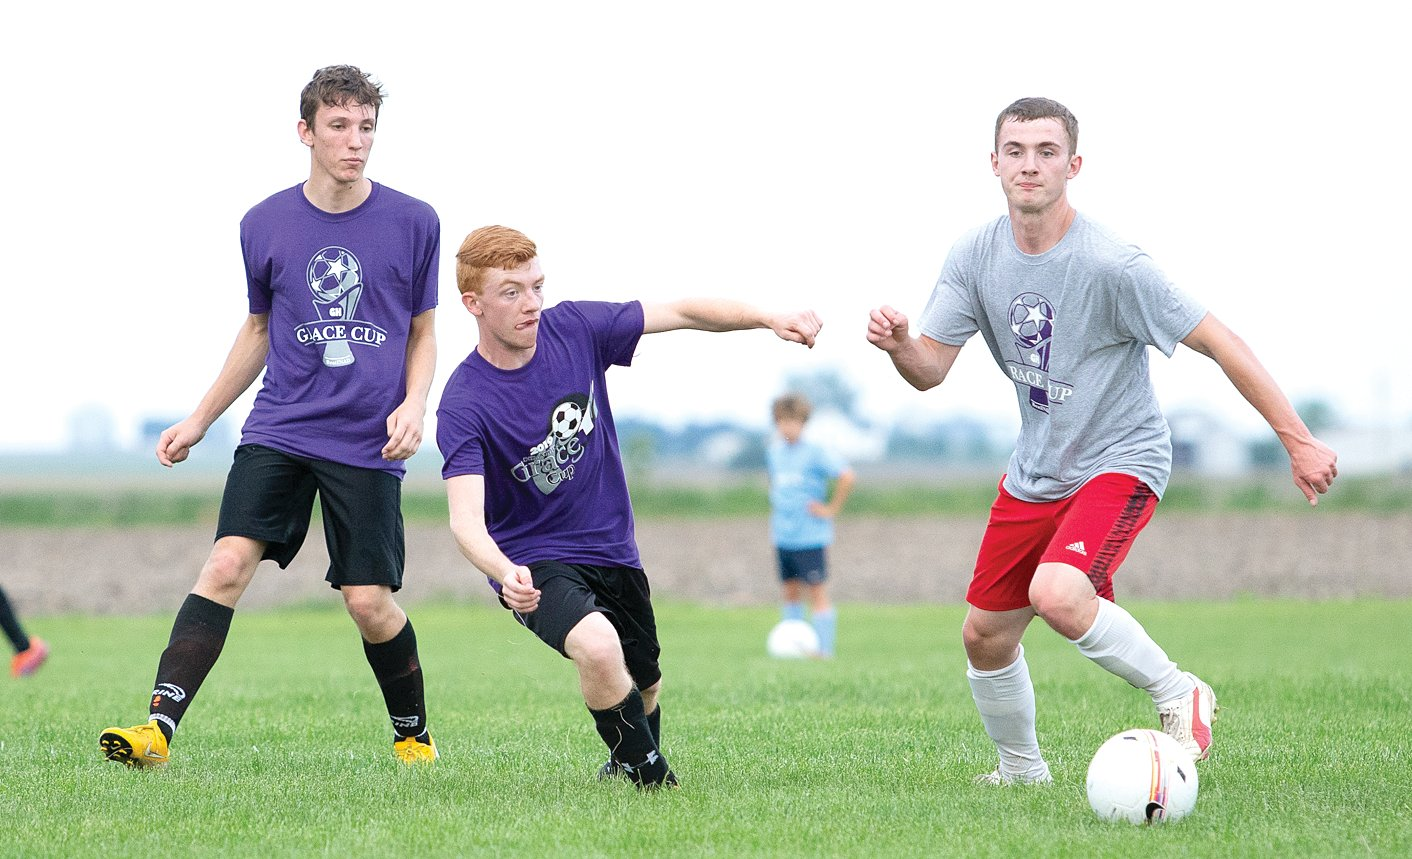 First Baptist Christian Academy's Nathan Bailey (left) and Nokomis' Brenden Applegate (center) try to track down Devan Martincic of Tri-City during the Grace Cup on Saturday, June 8, at Terry Todt RHSA Field in Raymond. The fifth annual all-star soccer game brought together 48 players from 15 different schools, ranging from north of Springfield to the Metro-East.